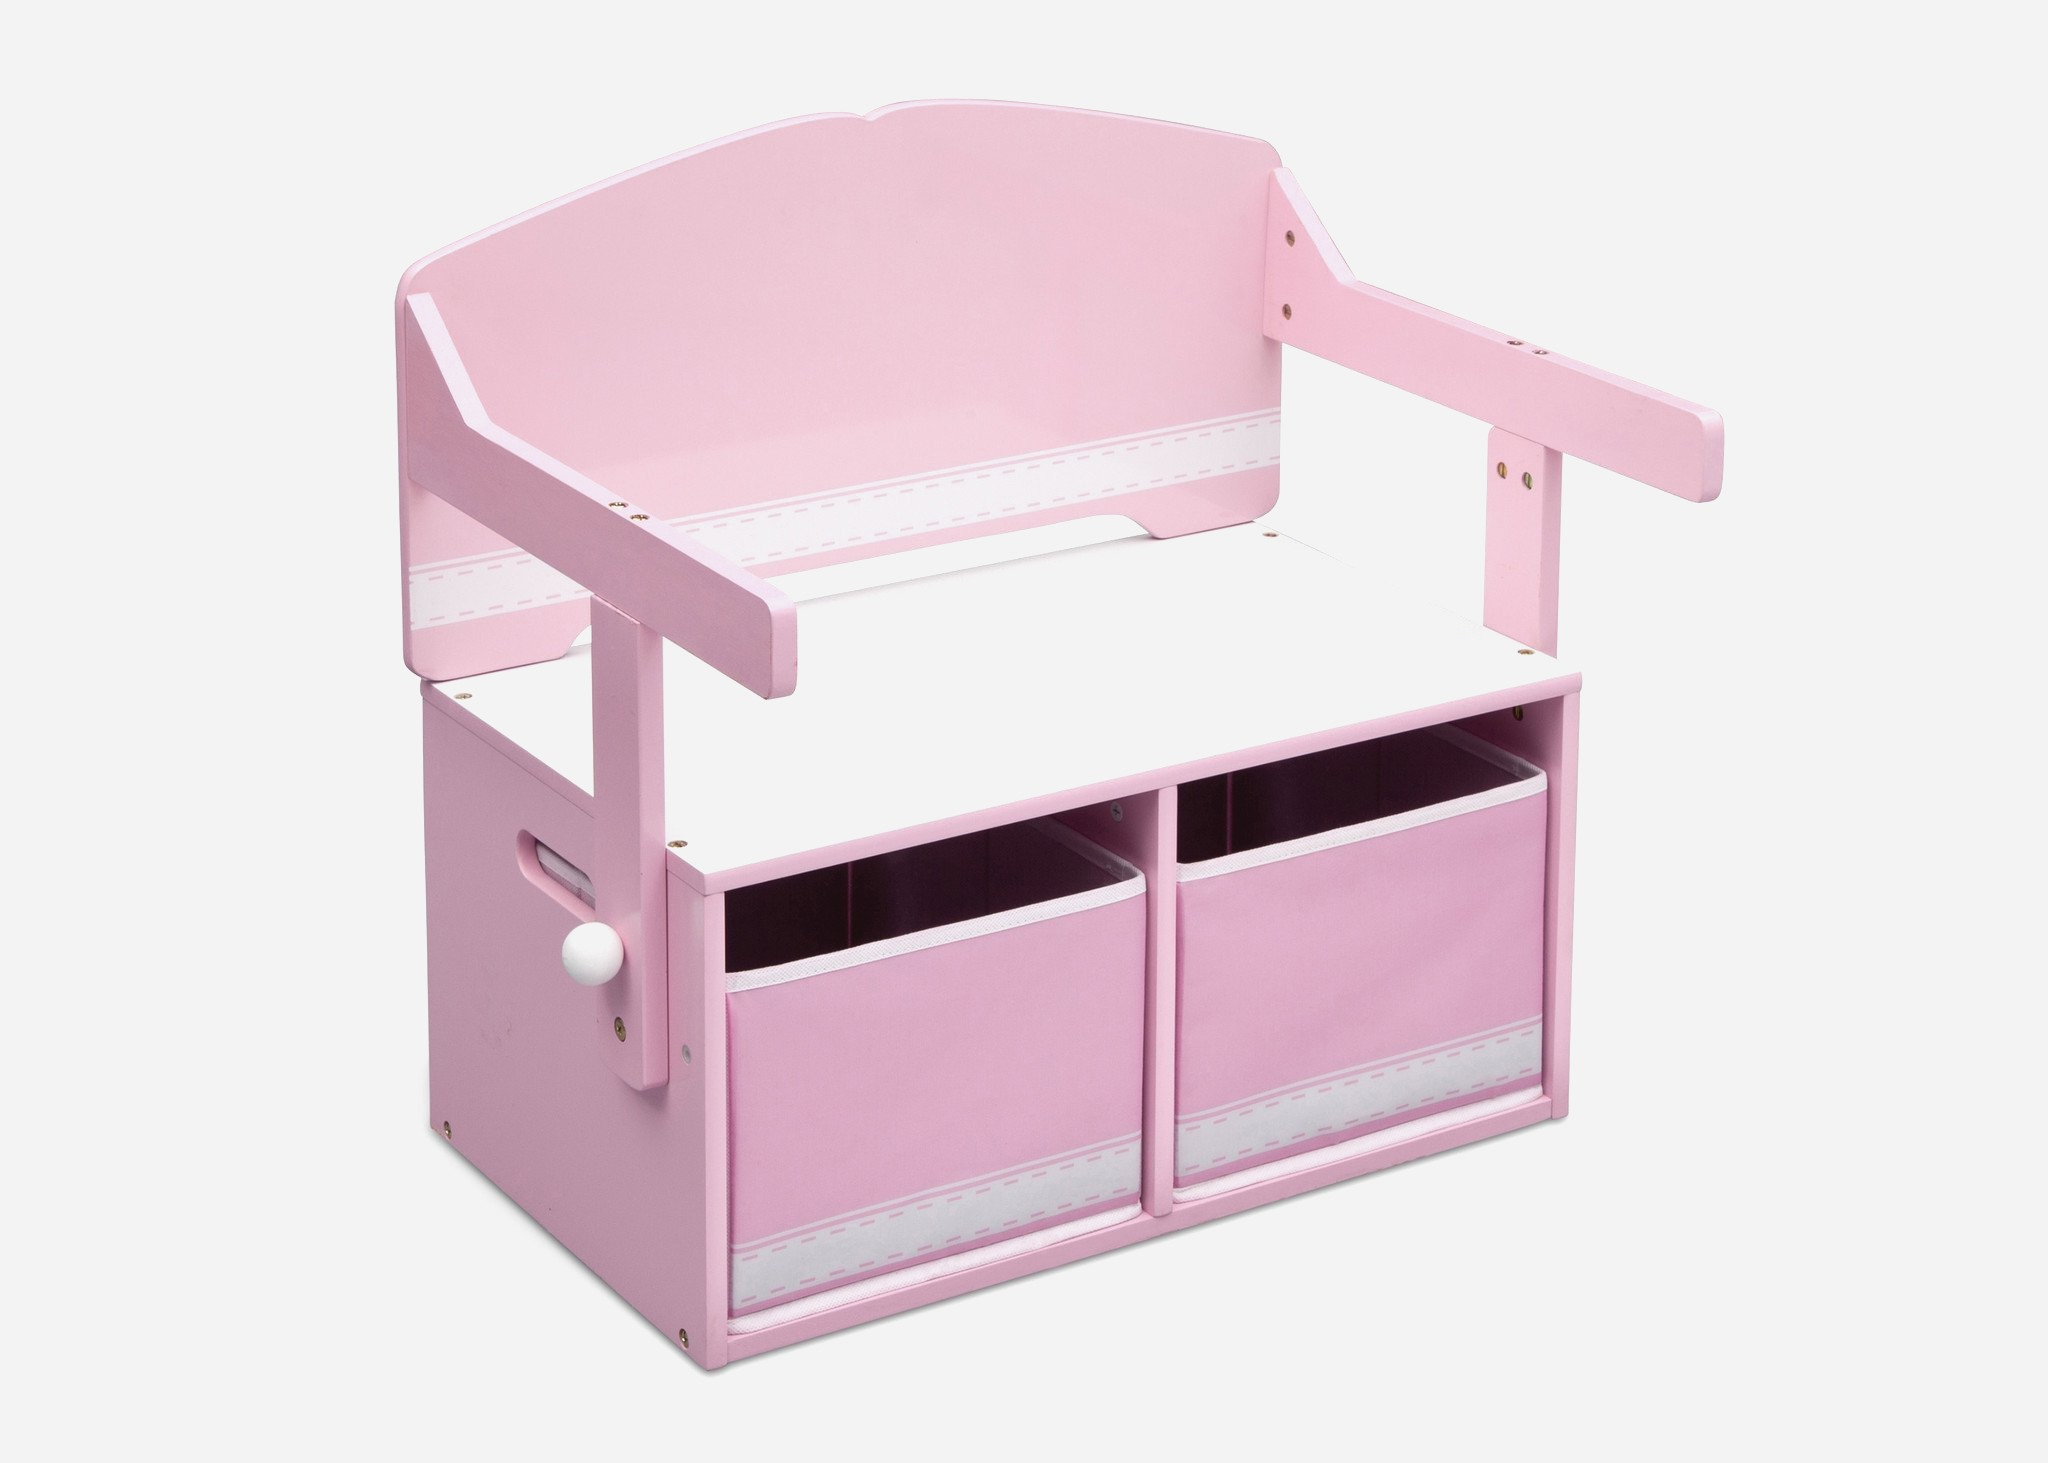 Lowes Storage Containers | Outside Bin Store | Rubbermaid Storage Bench